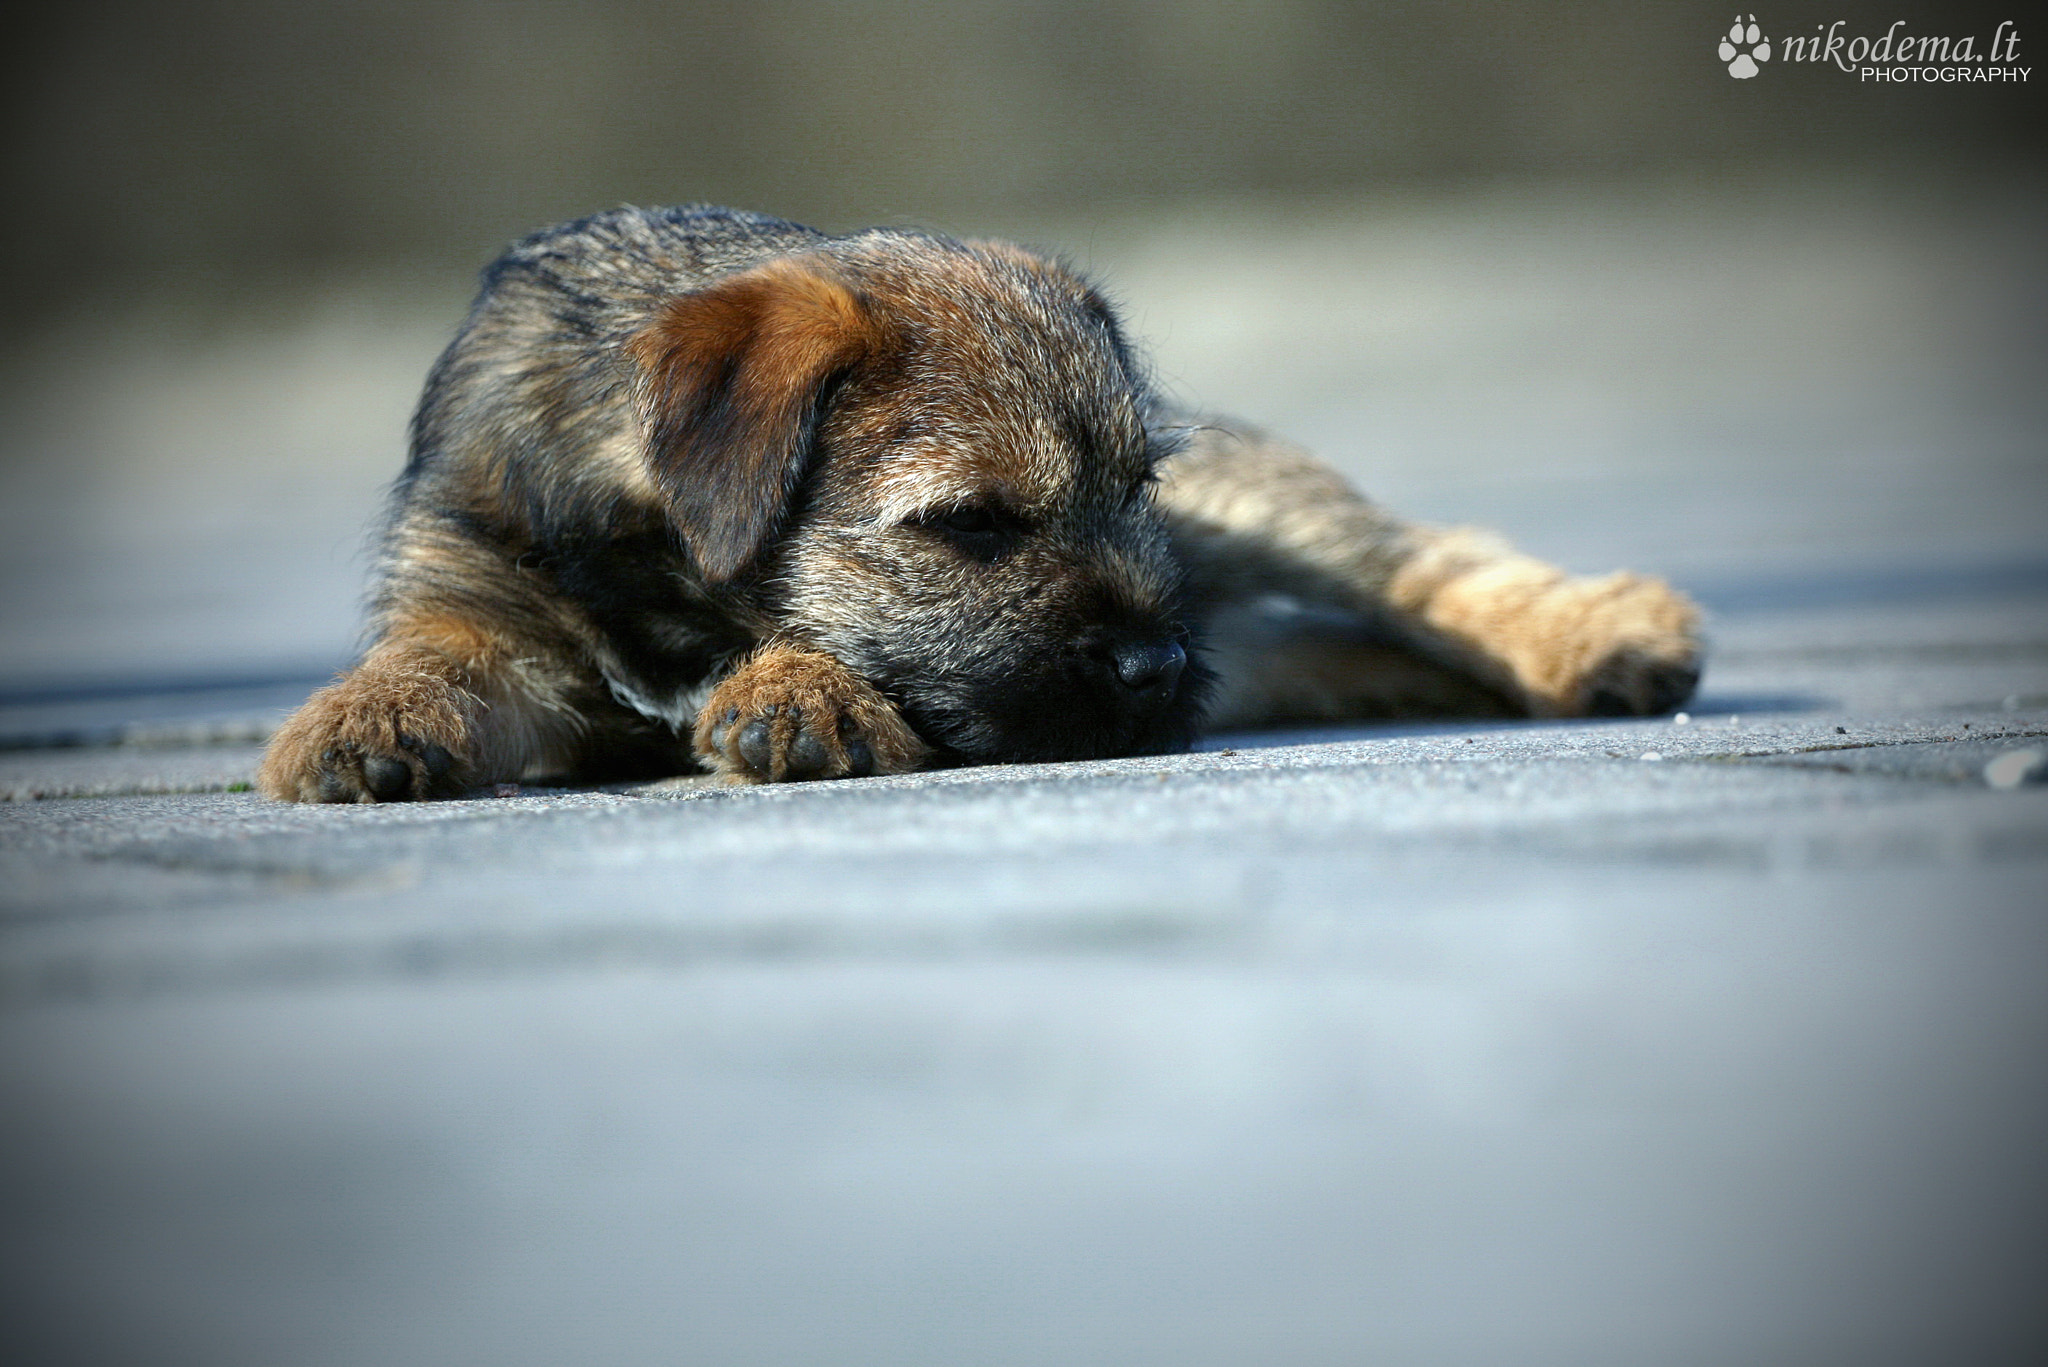 Photograph Border Terrier puppy by Sandra (Nikodema) on 500px